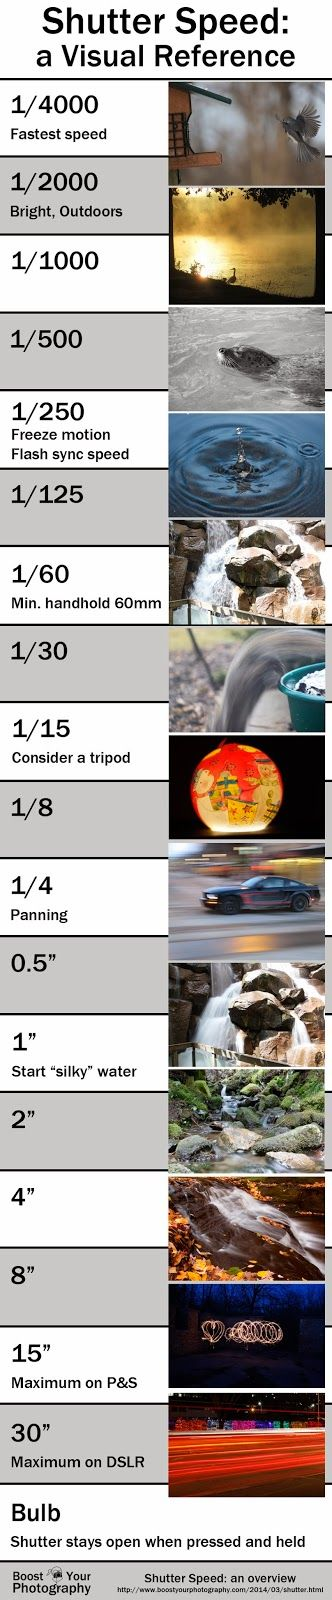 Shutter Speed: an overview | Boost Your Photography #photography #photographytips